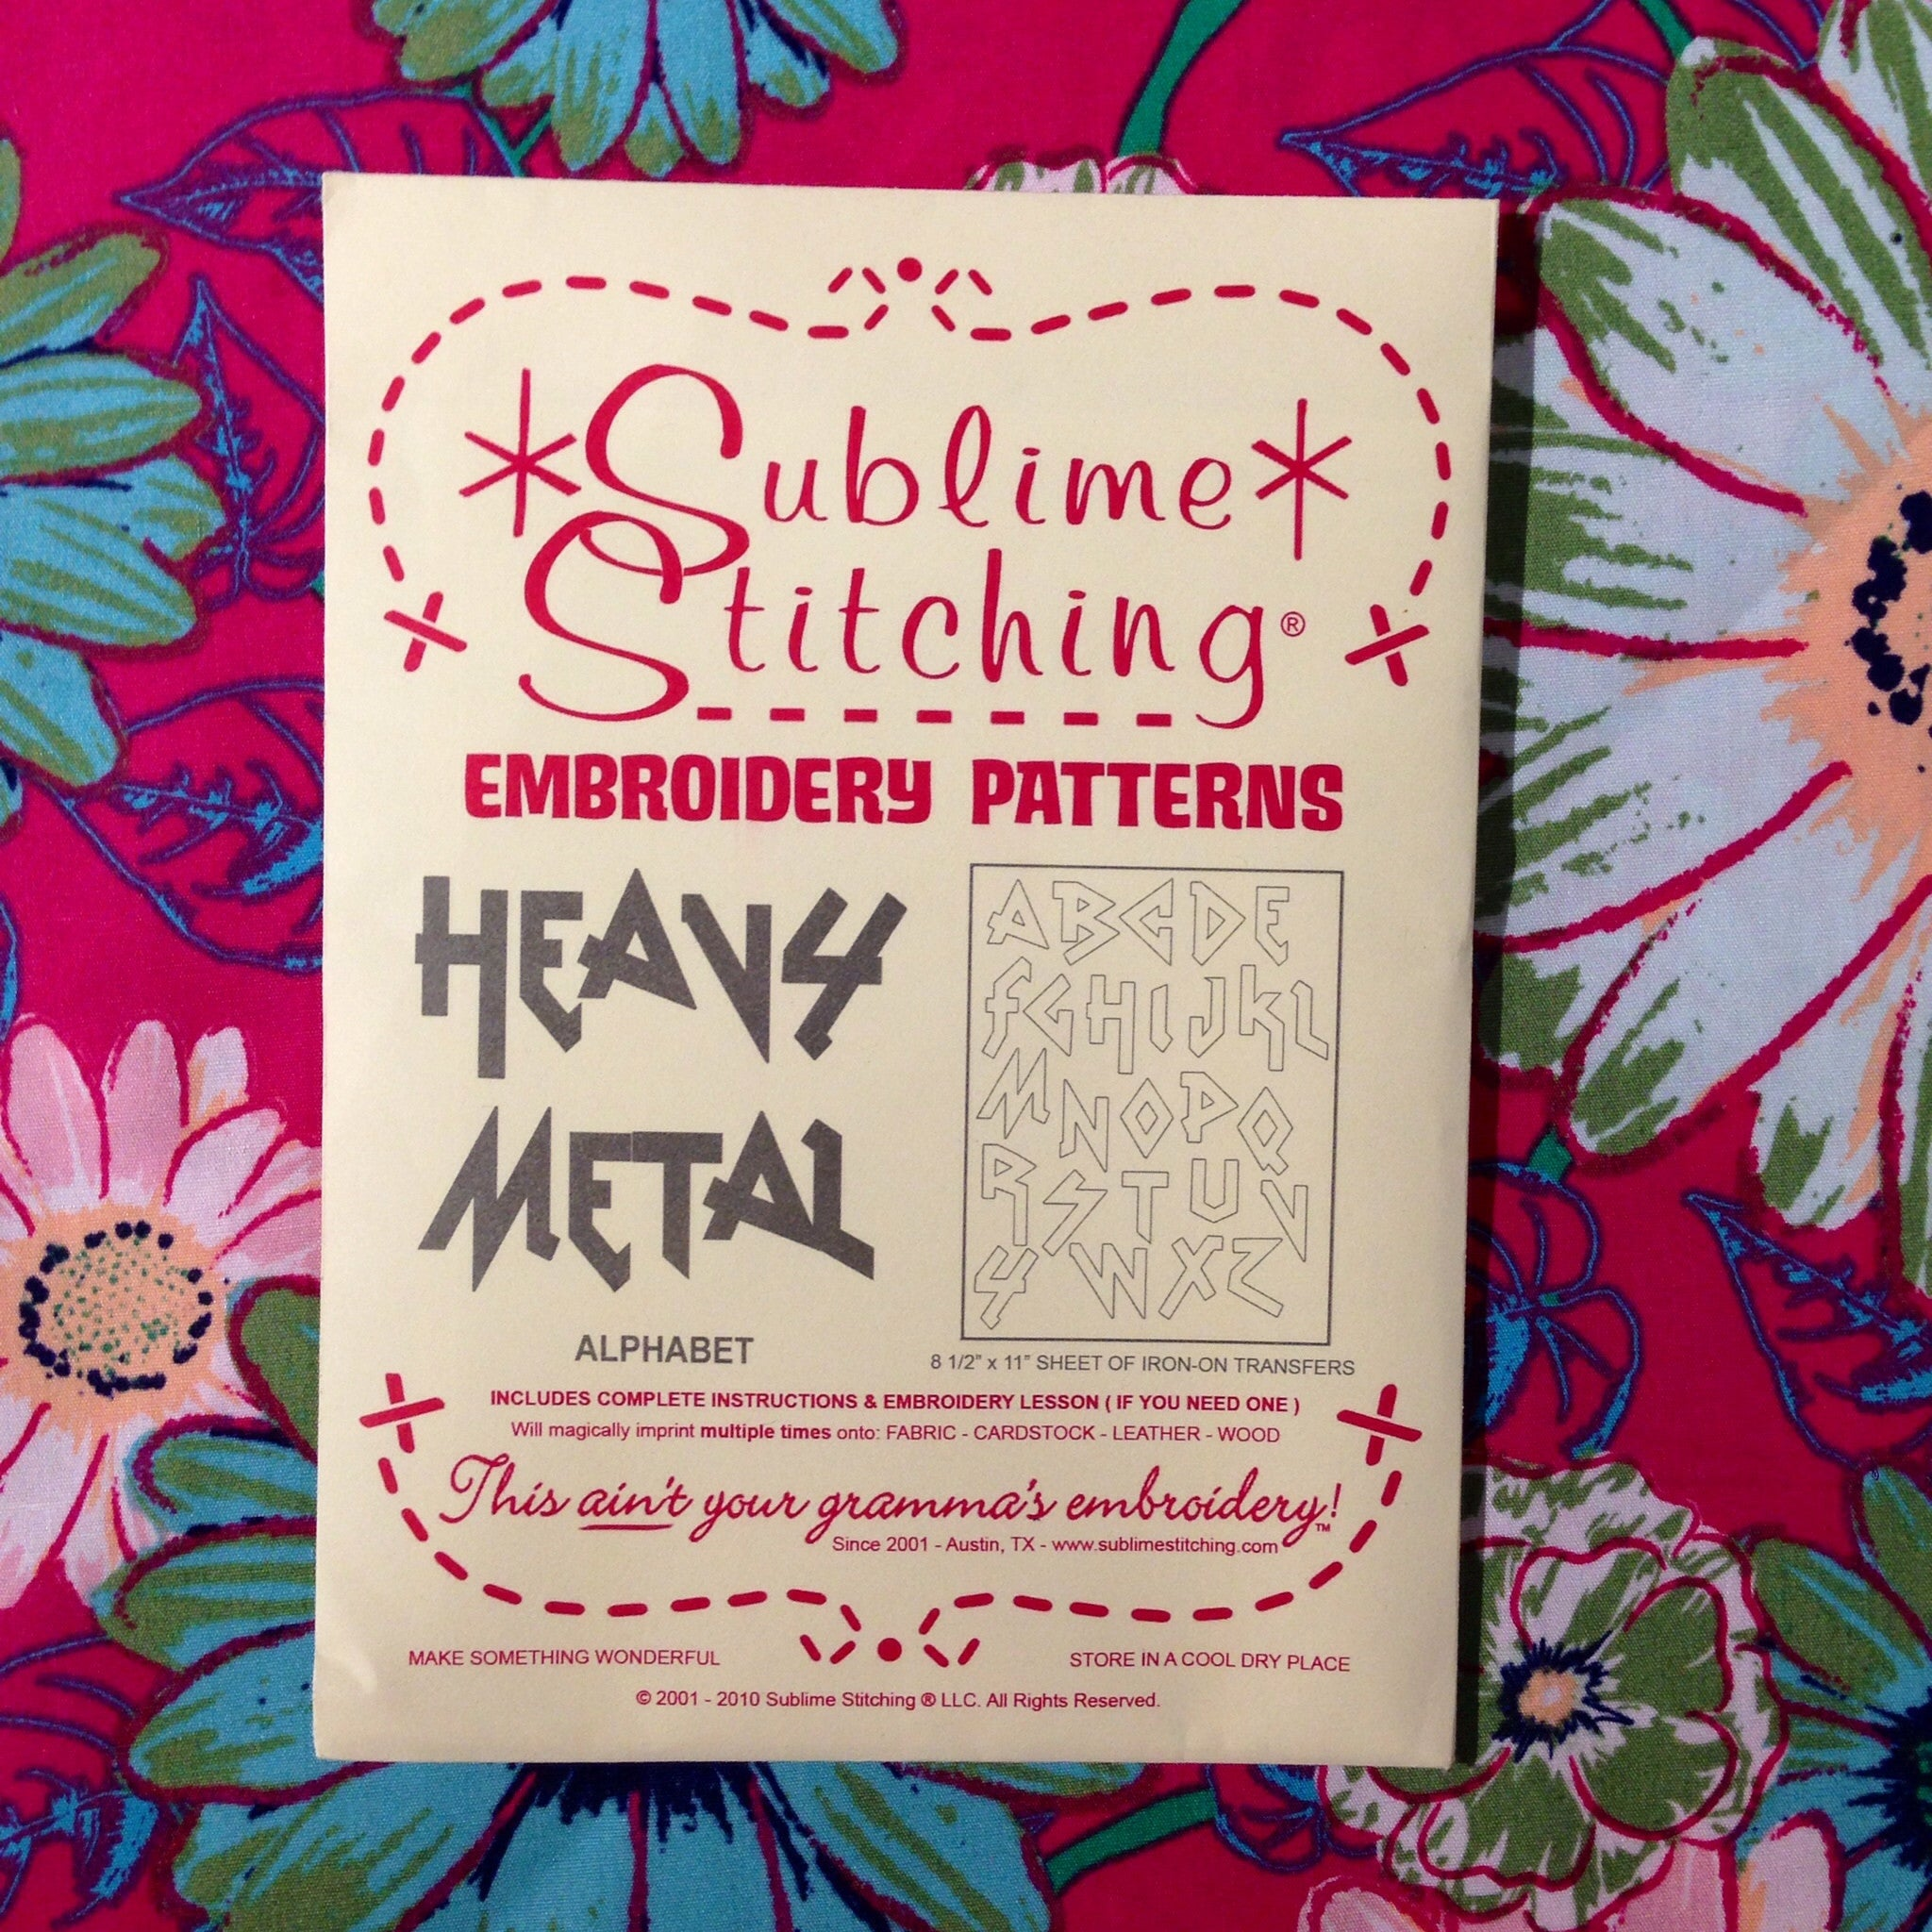 Sublime Stitching Embroidery Patterns - Heavy Metal Alphabet